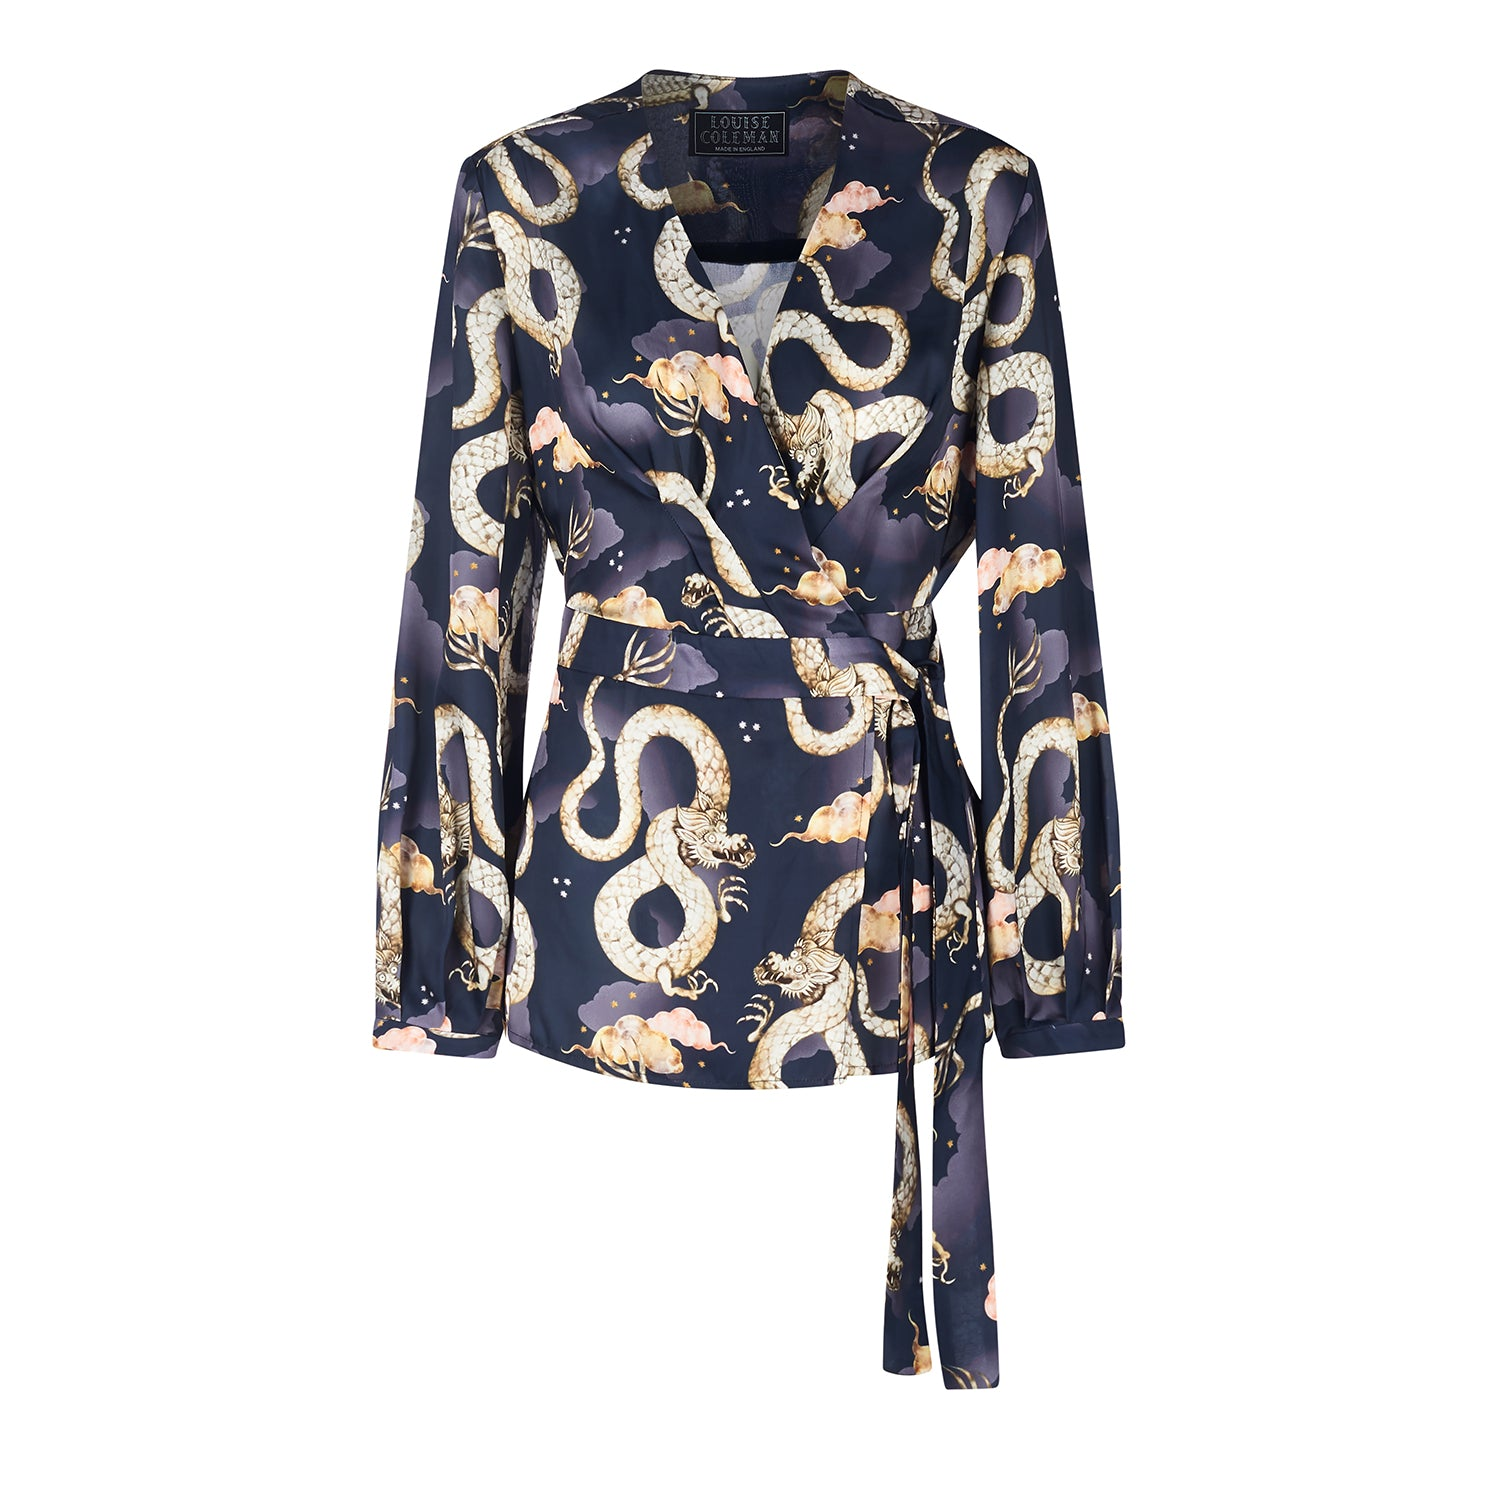 Midi wrap dress in navy Magic Dragon print by Louise Coleman